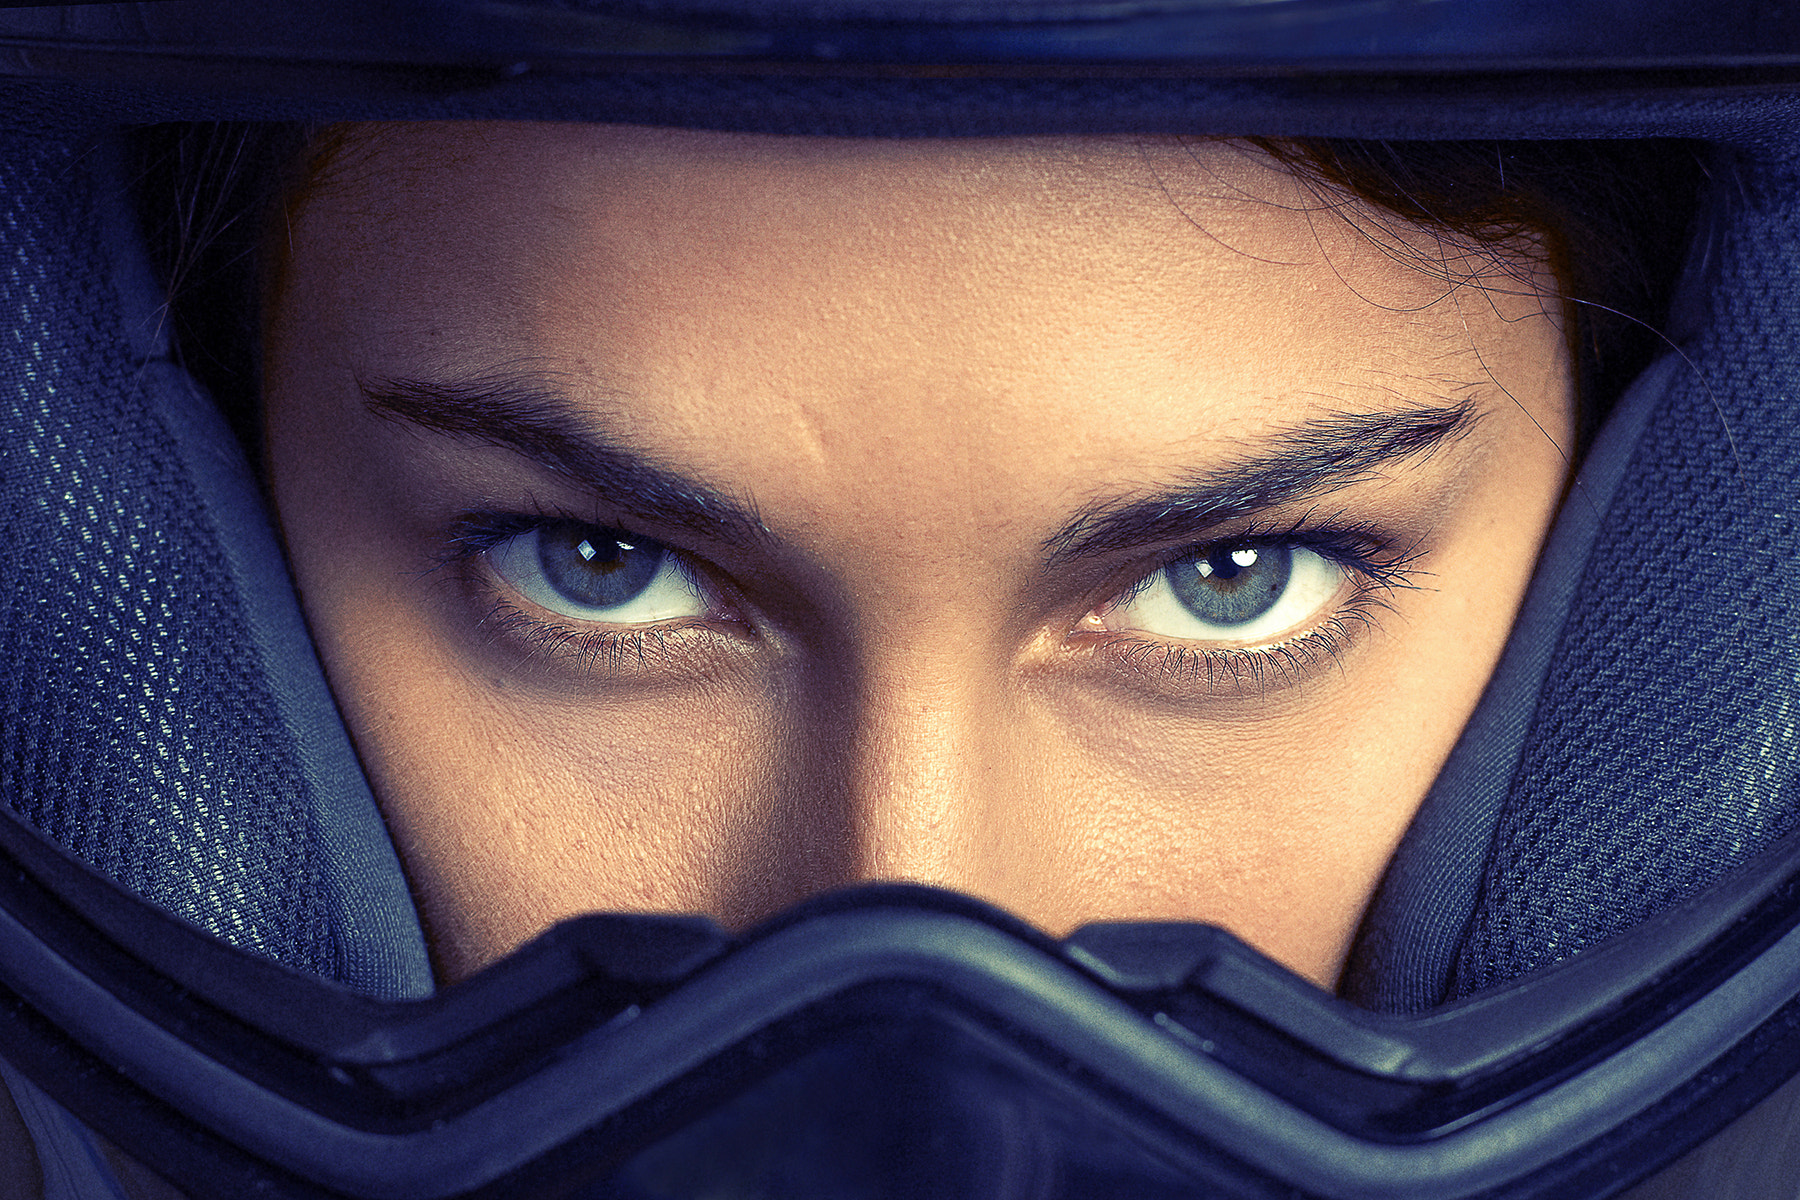 Photograph Deep look by ARTEM EDINЪ on 500px